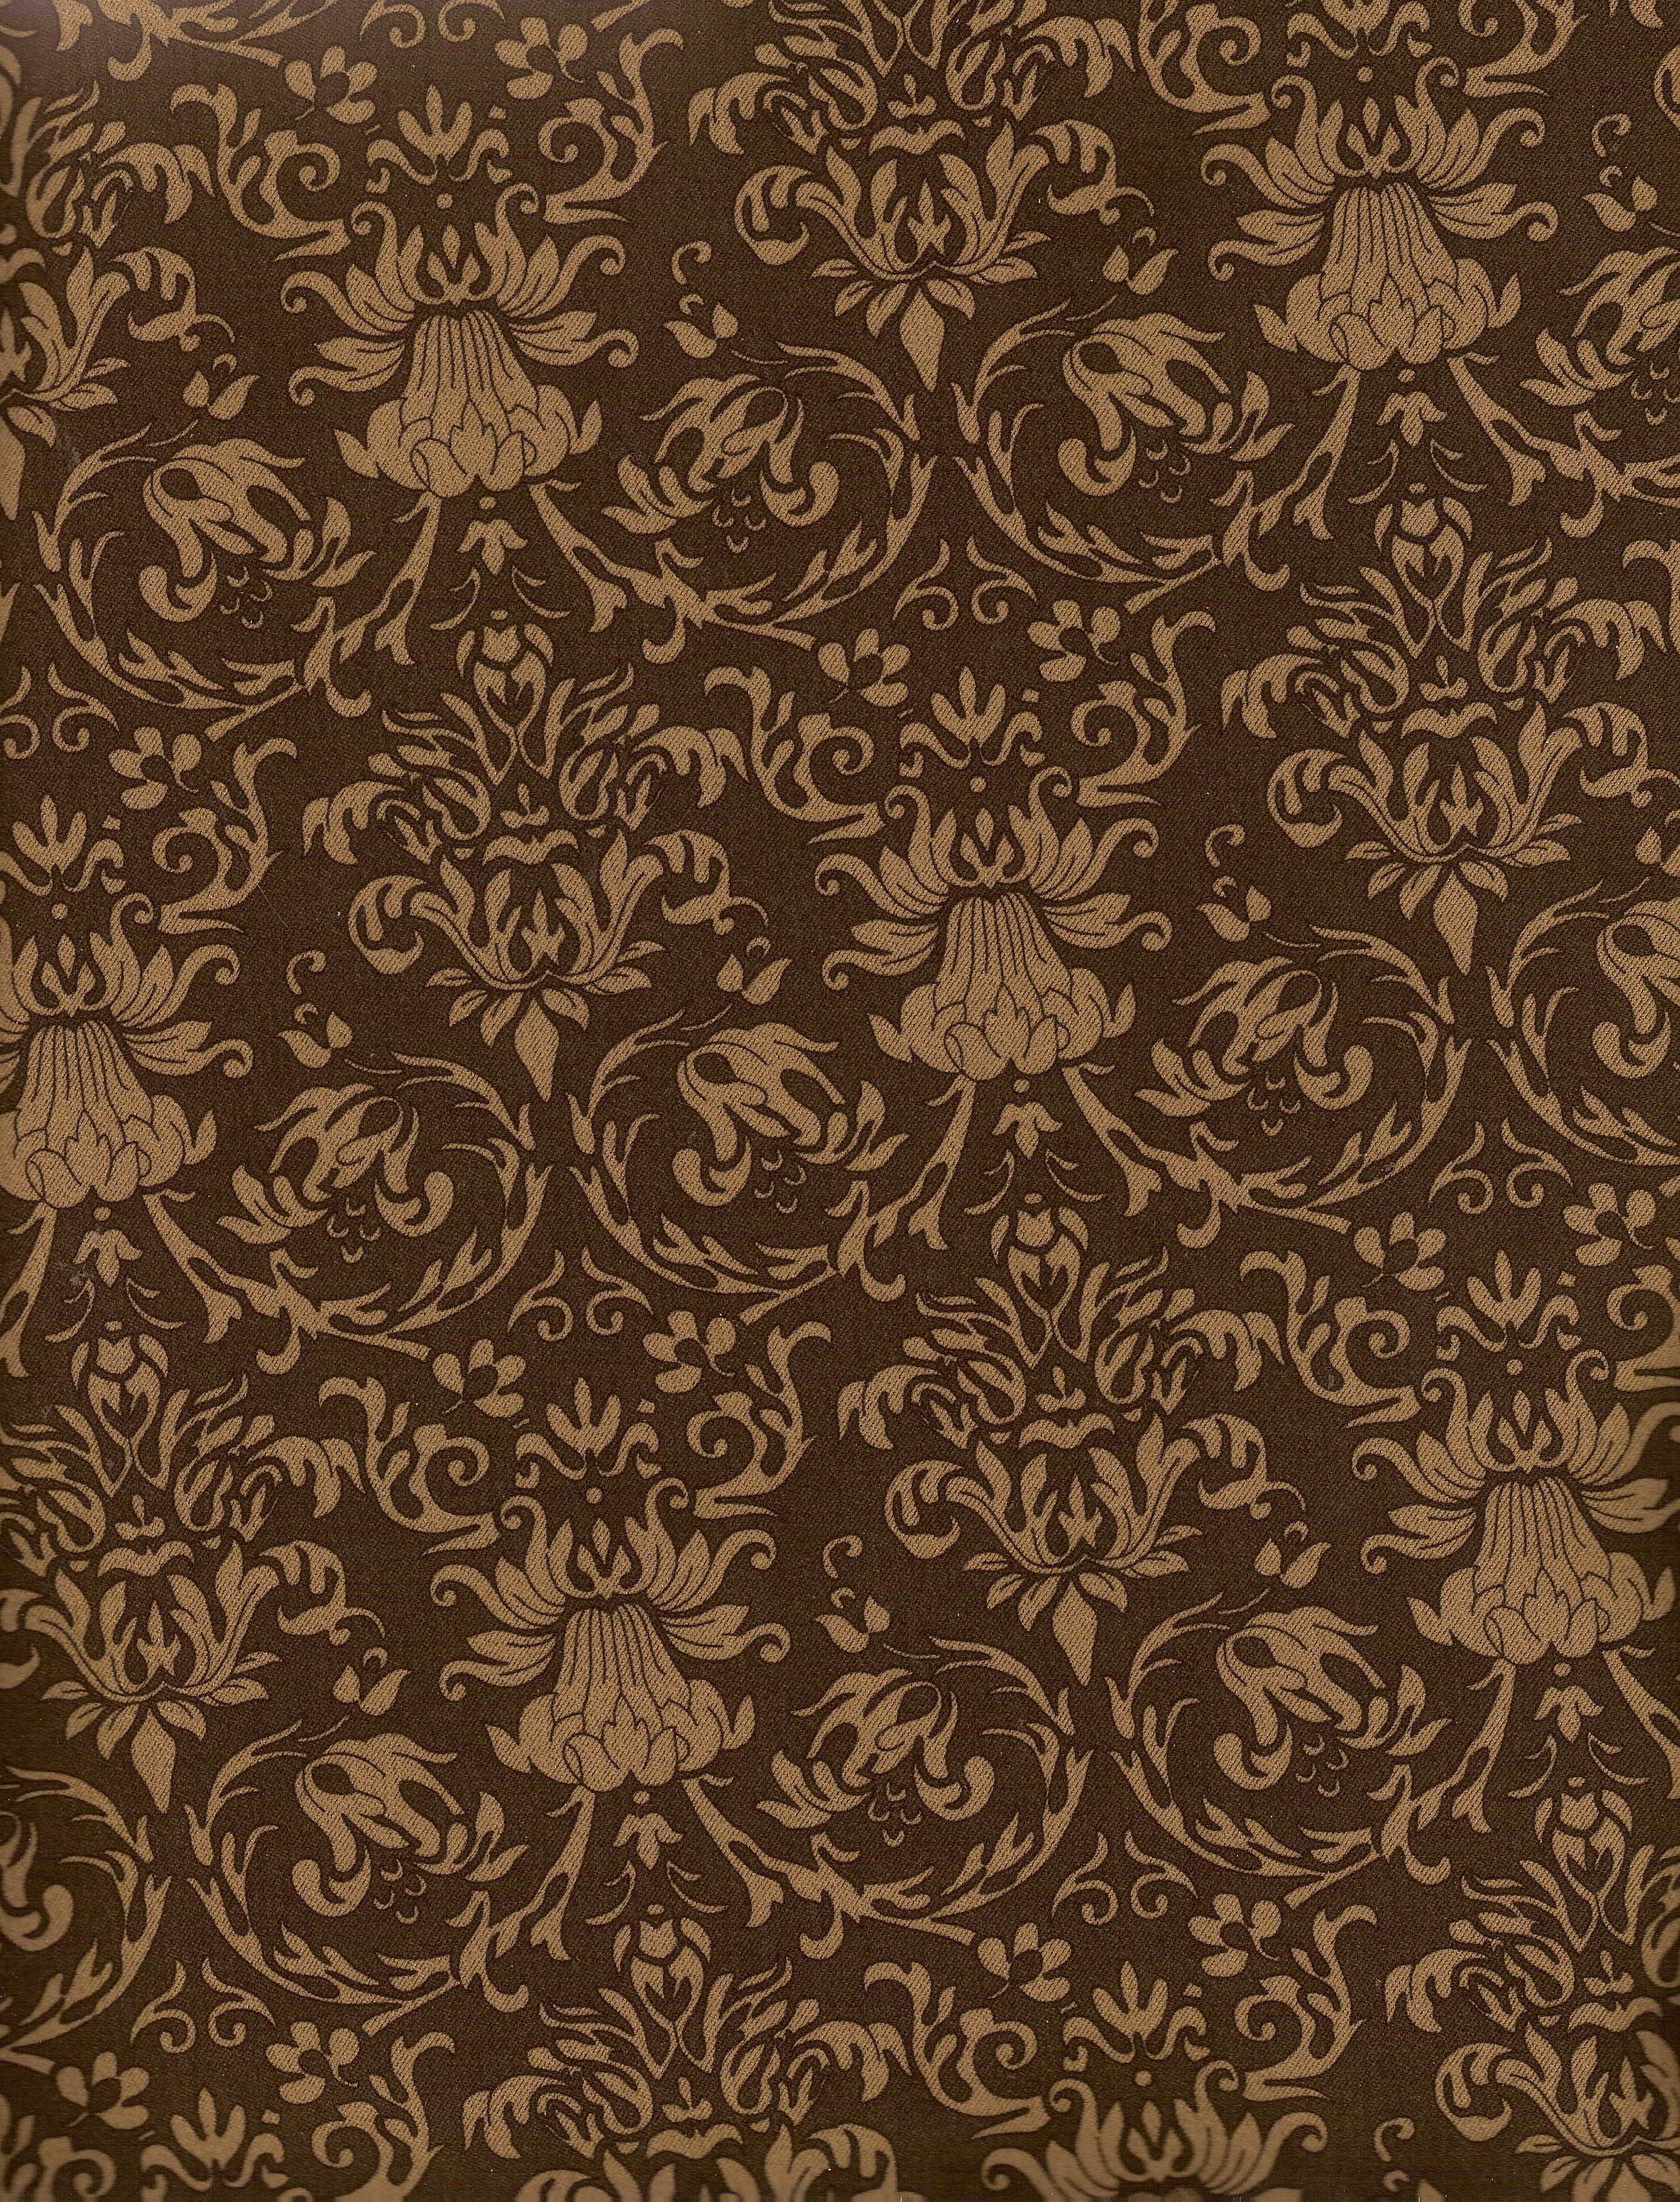 Seamless Free Floral Textures (4)